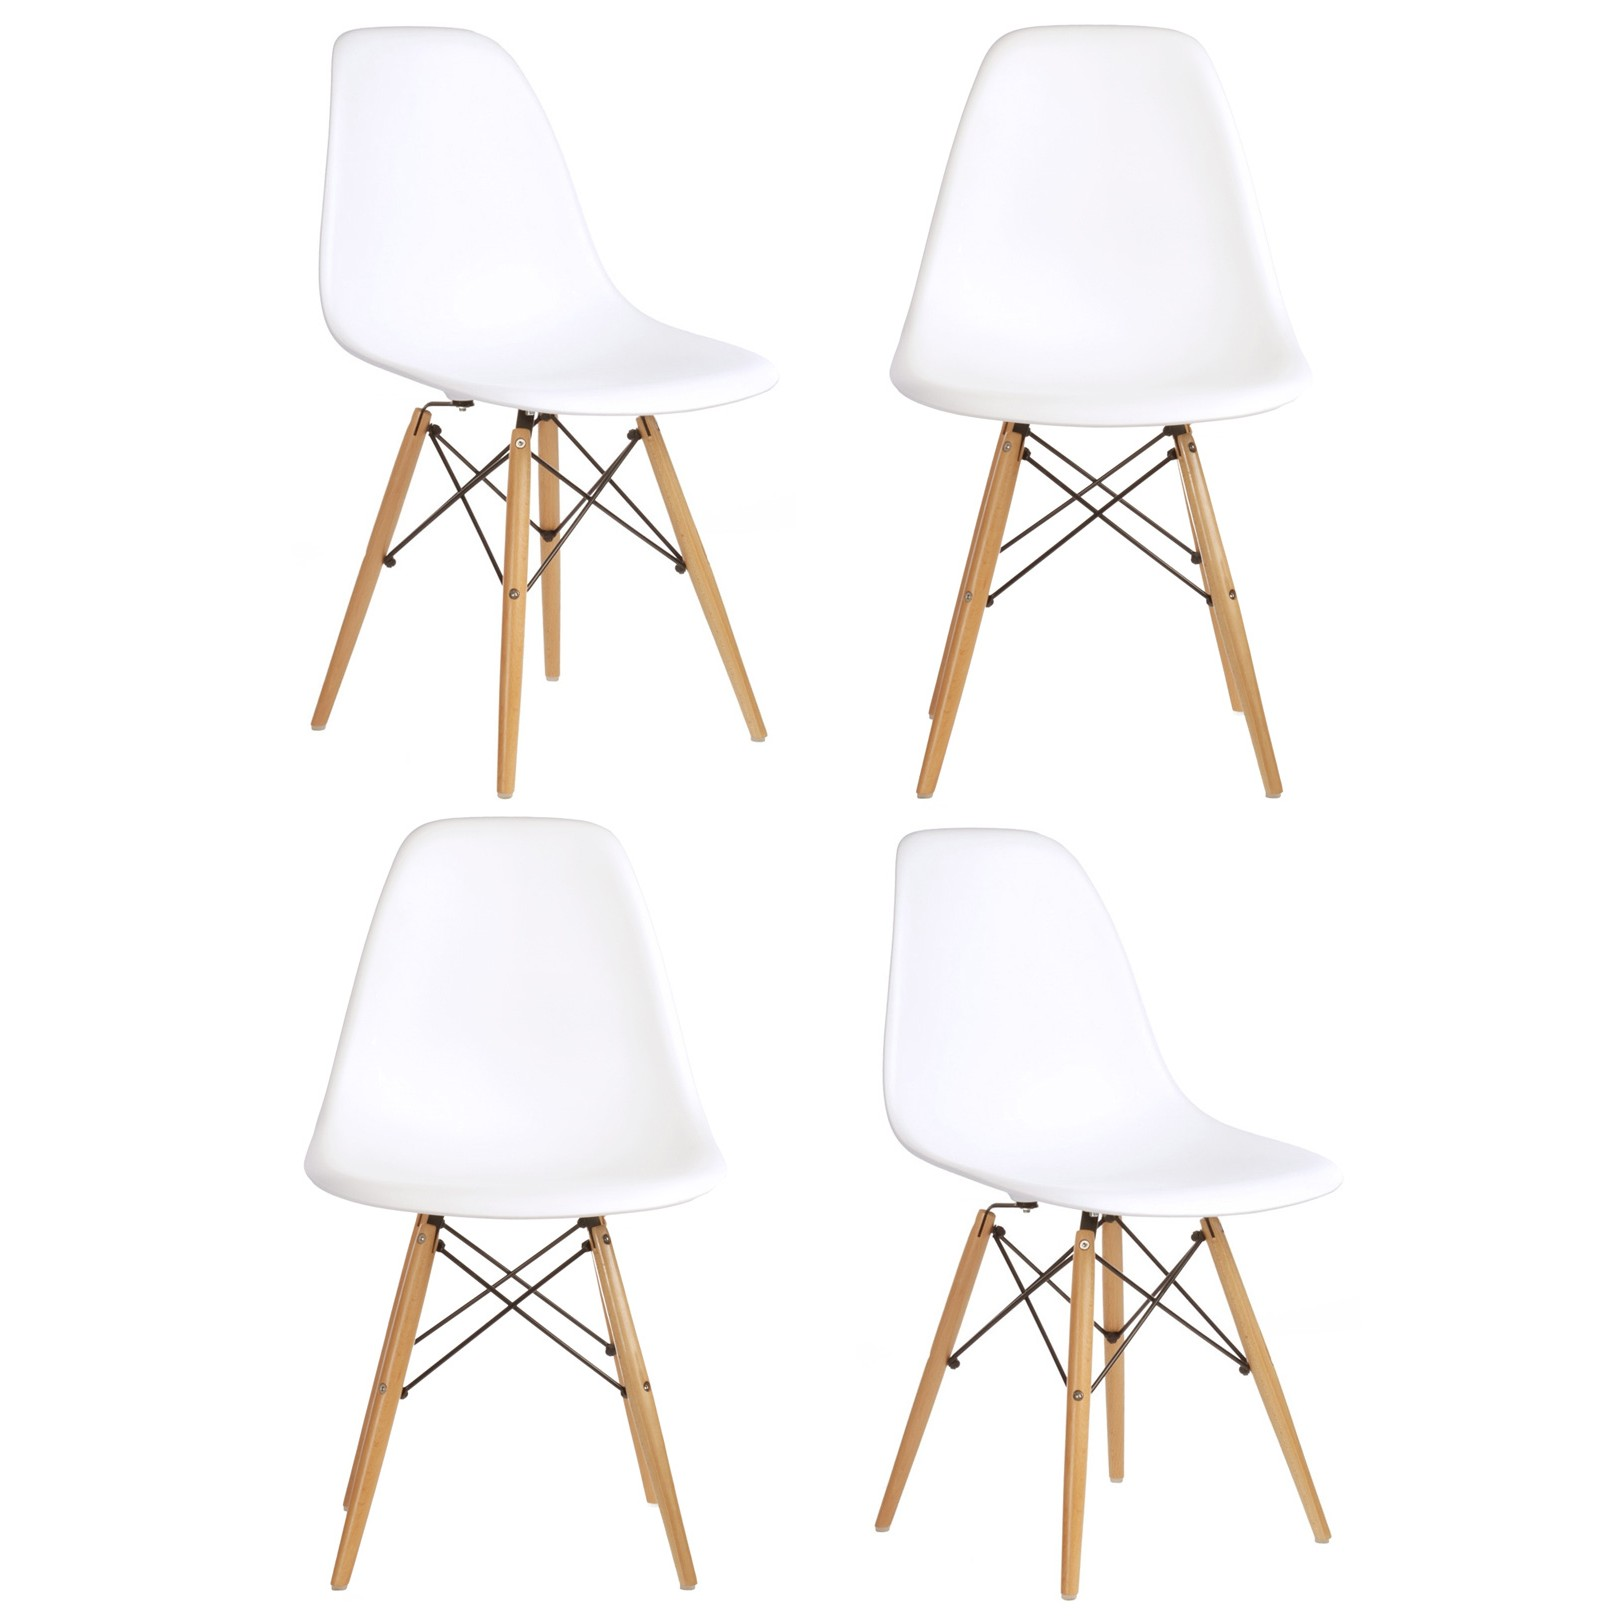 Eames Eiffel Set Of 4 Dsw Molded White Plastic Dining Shell Chair With Wood Eiffel Legs